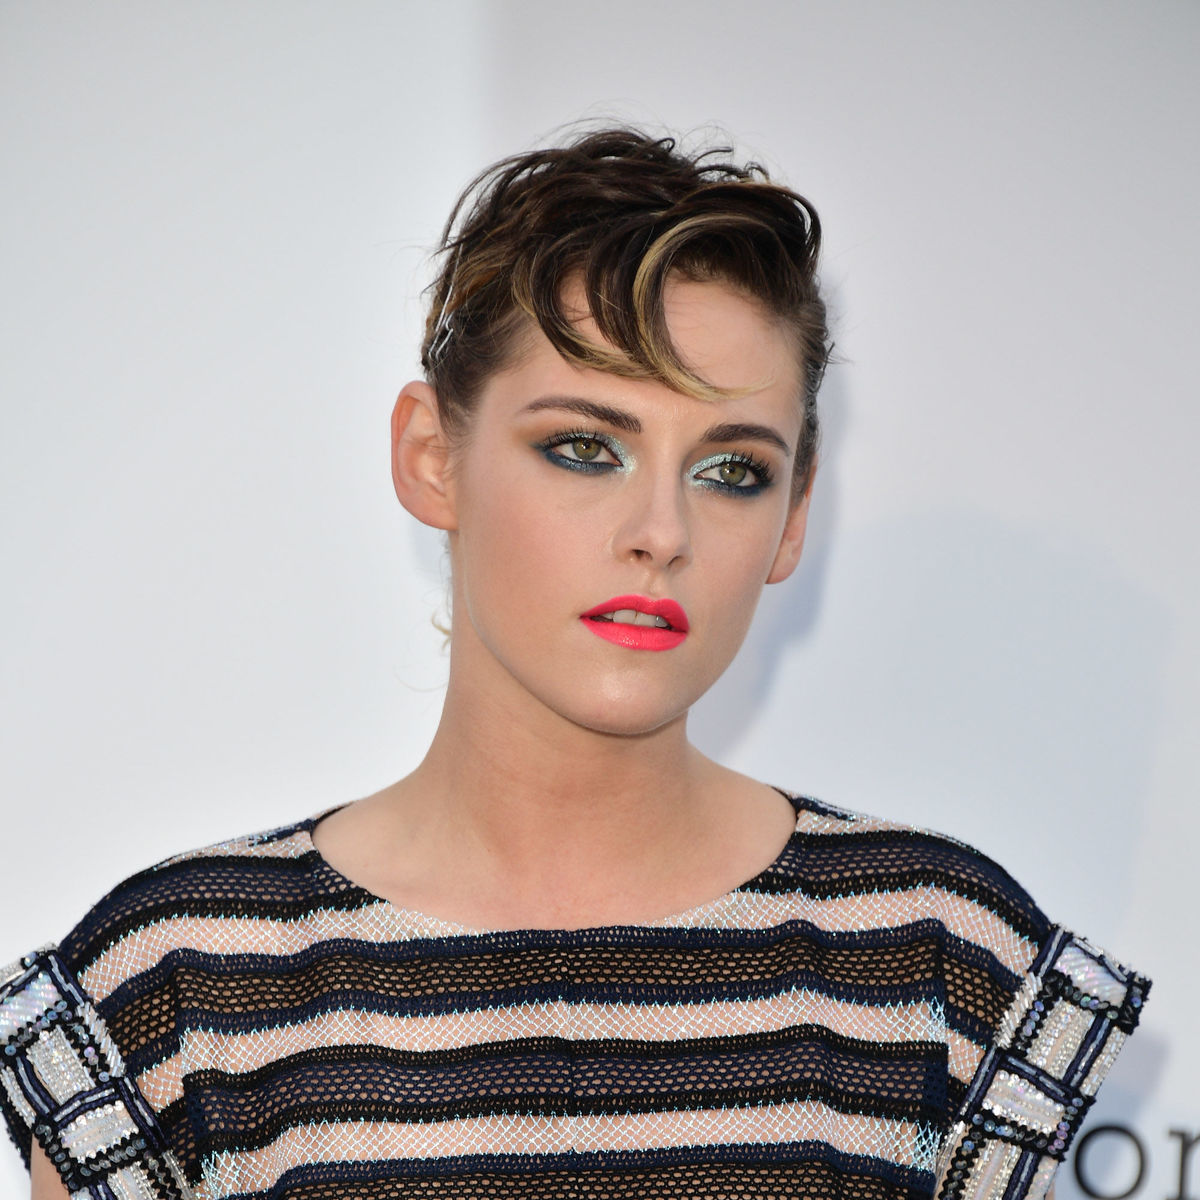 Kristen Stewart to star in 'Charlie's Angels' reboot